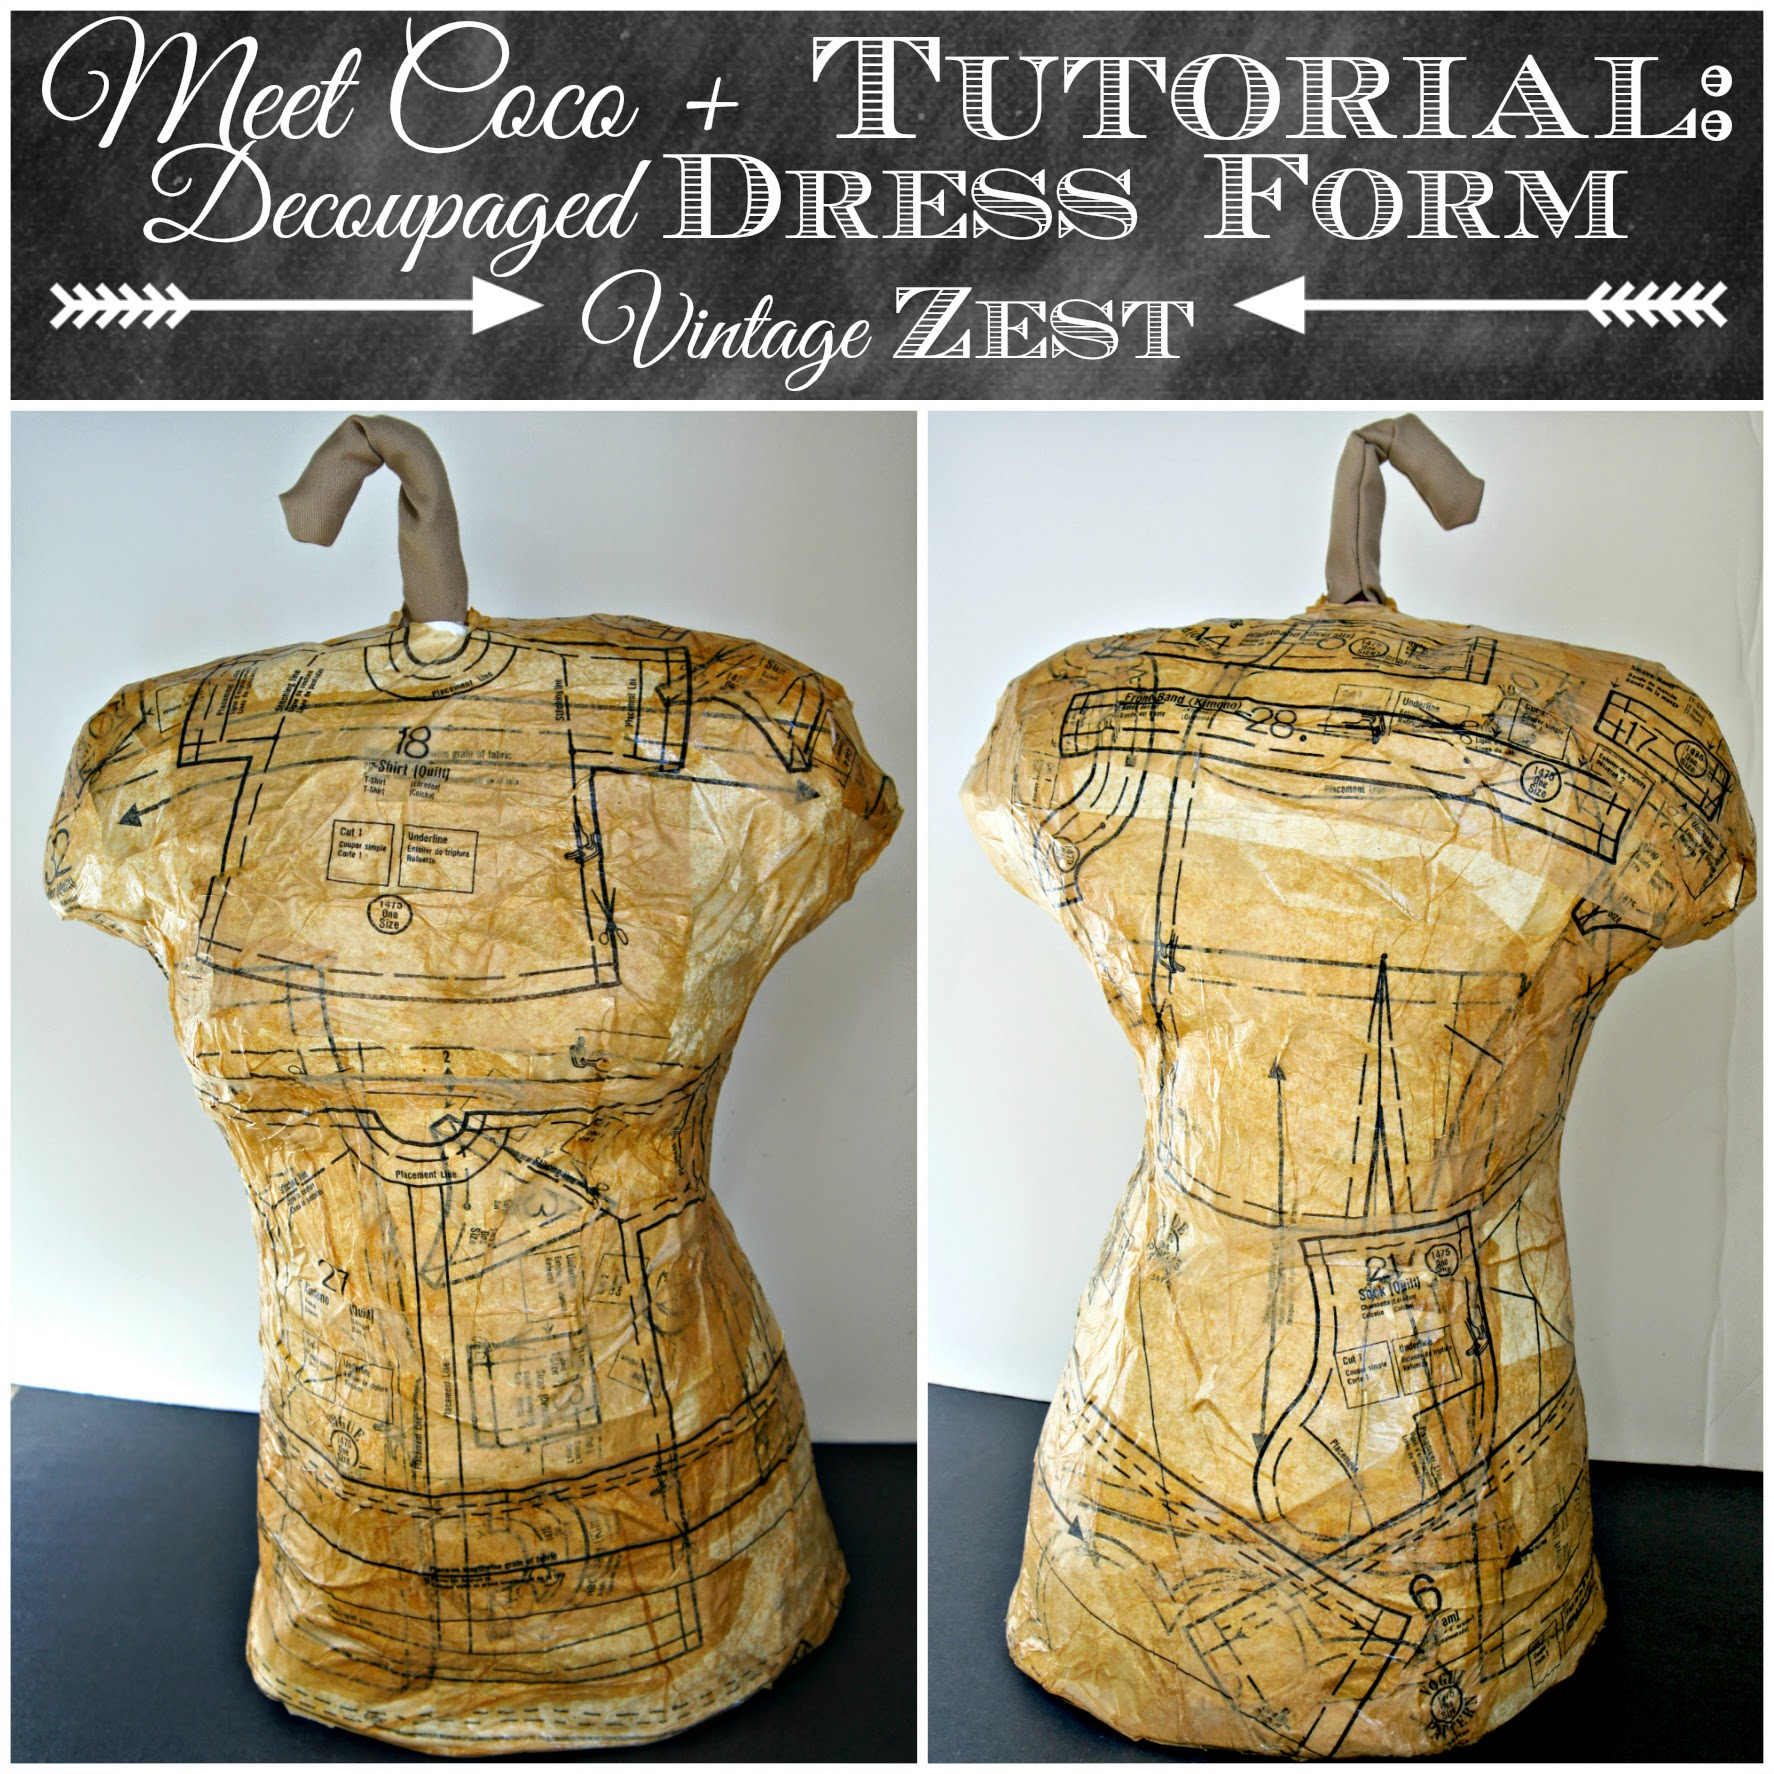 Meet Coco + Tutorial: Decoupaged Dress Form on Diane's Vintage Zest!